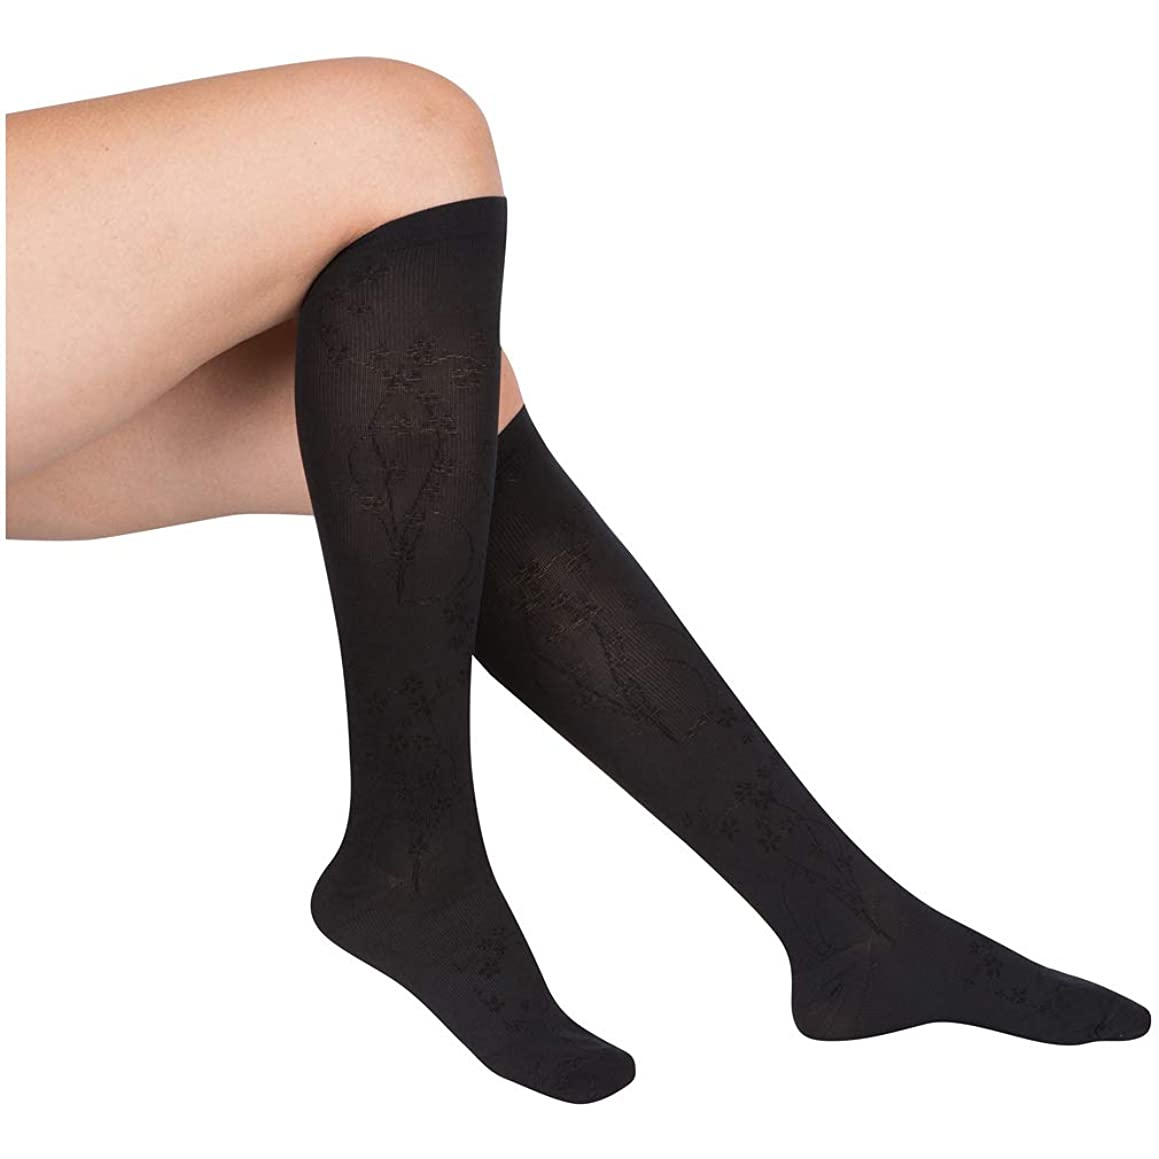 EvoNation Women's Floral Pattern USA Made Graduated Compression Socks 15-20 mmHg Moderate Pressure Medical Quality Ladies Knee High Support Stockings, Best Comfort Fit Circulation Hose (XL, Black)